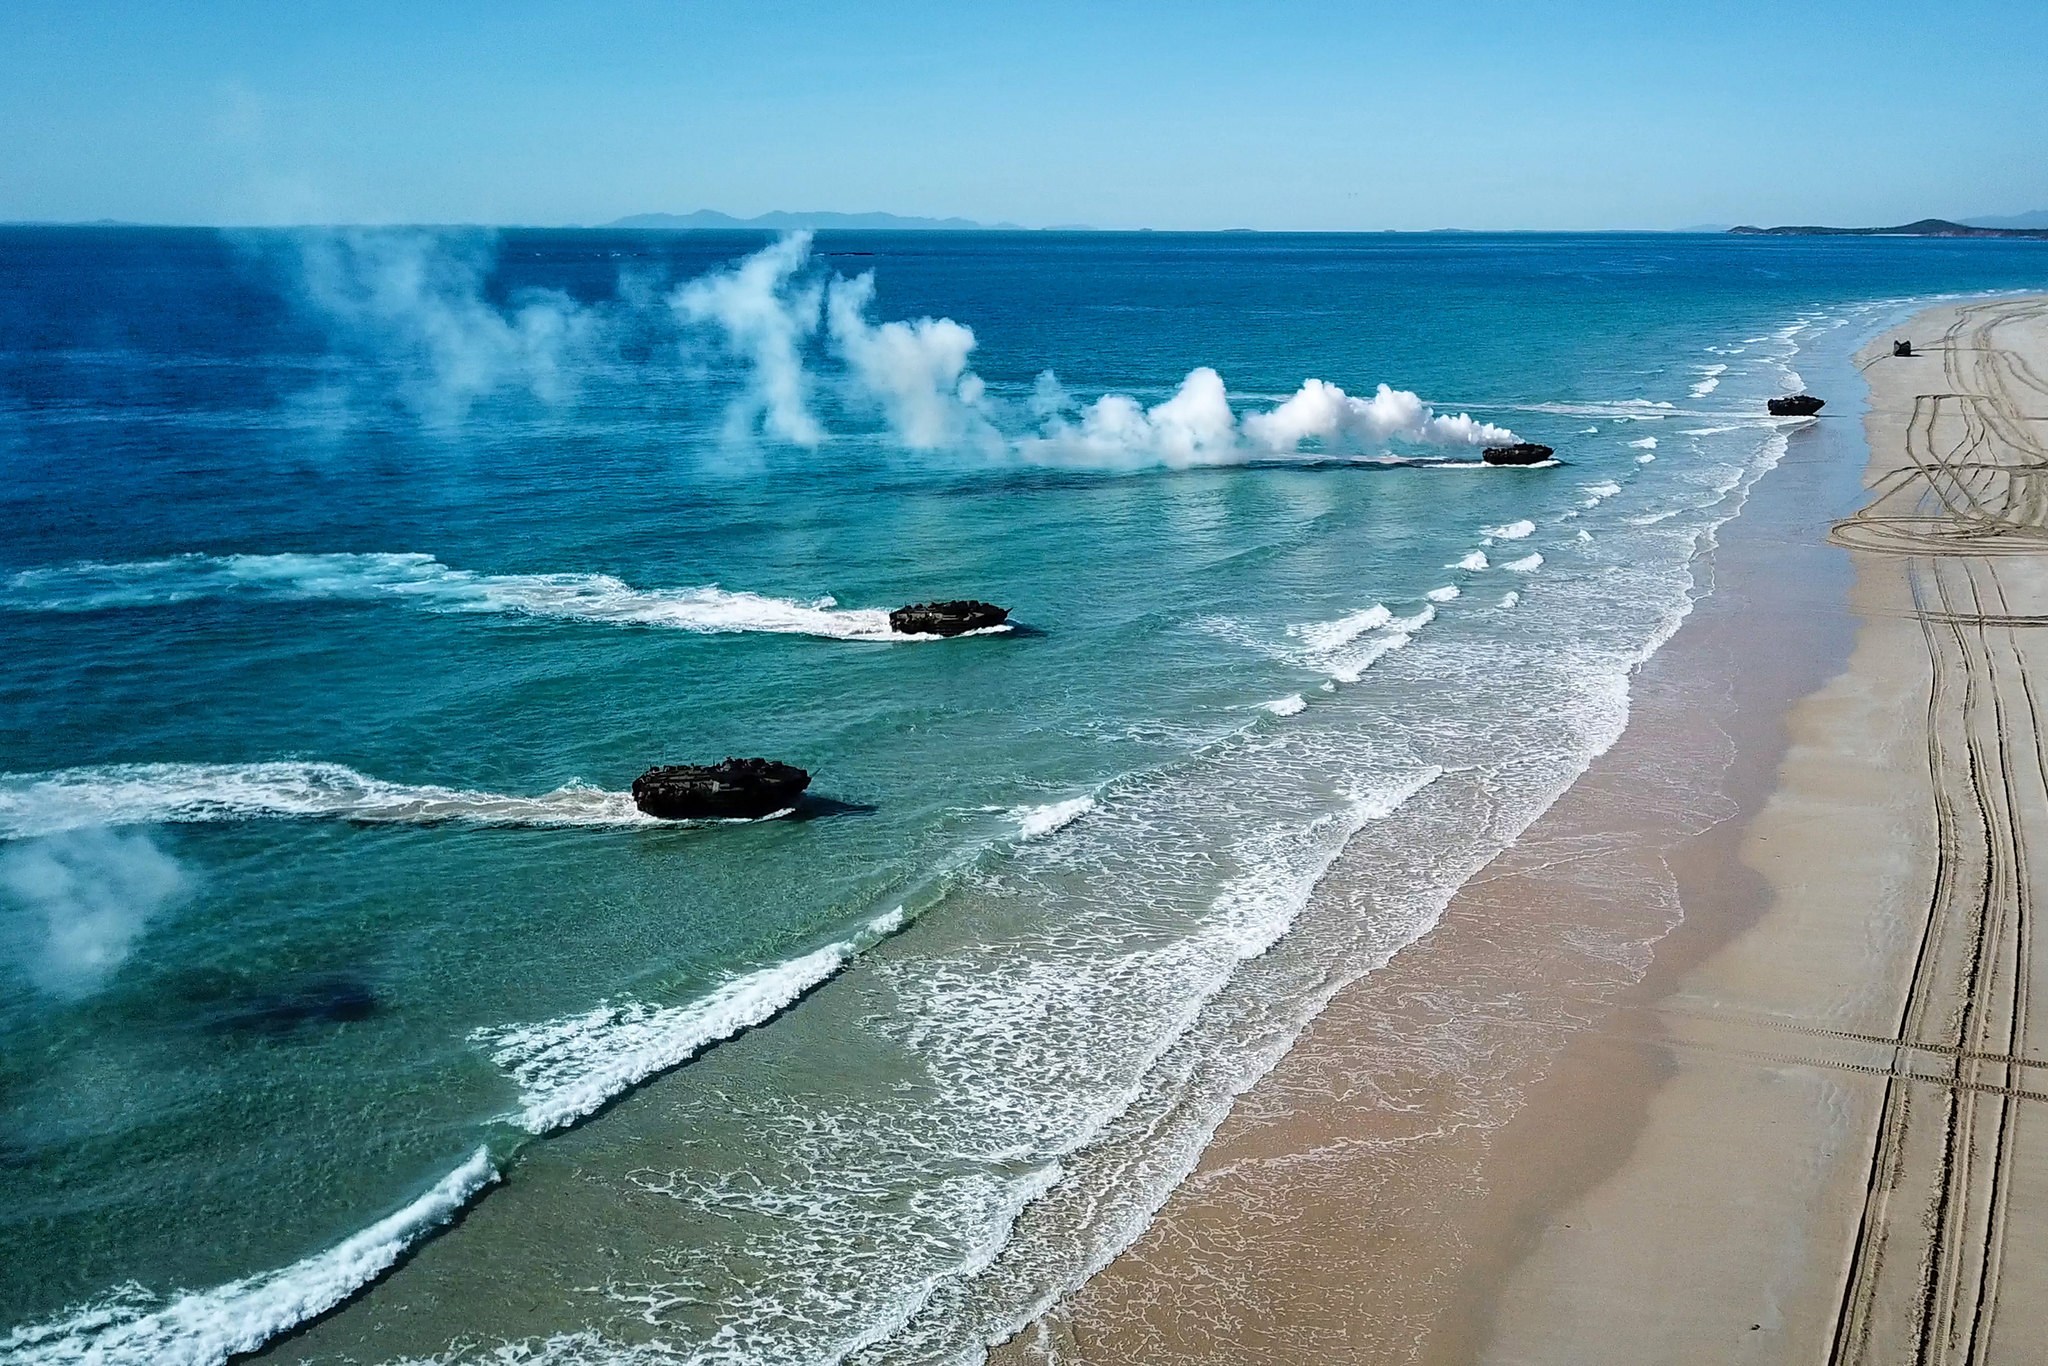 Amphibious assault vehicles approach Langham's Beach in Stanage Bay in Queensland, Australia, during a multinational amphibious landing July 16, 2019, as part of exercise Talisman Sabre 2019. (Australian Army)